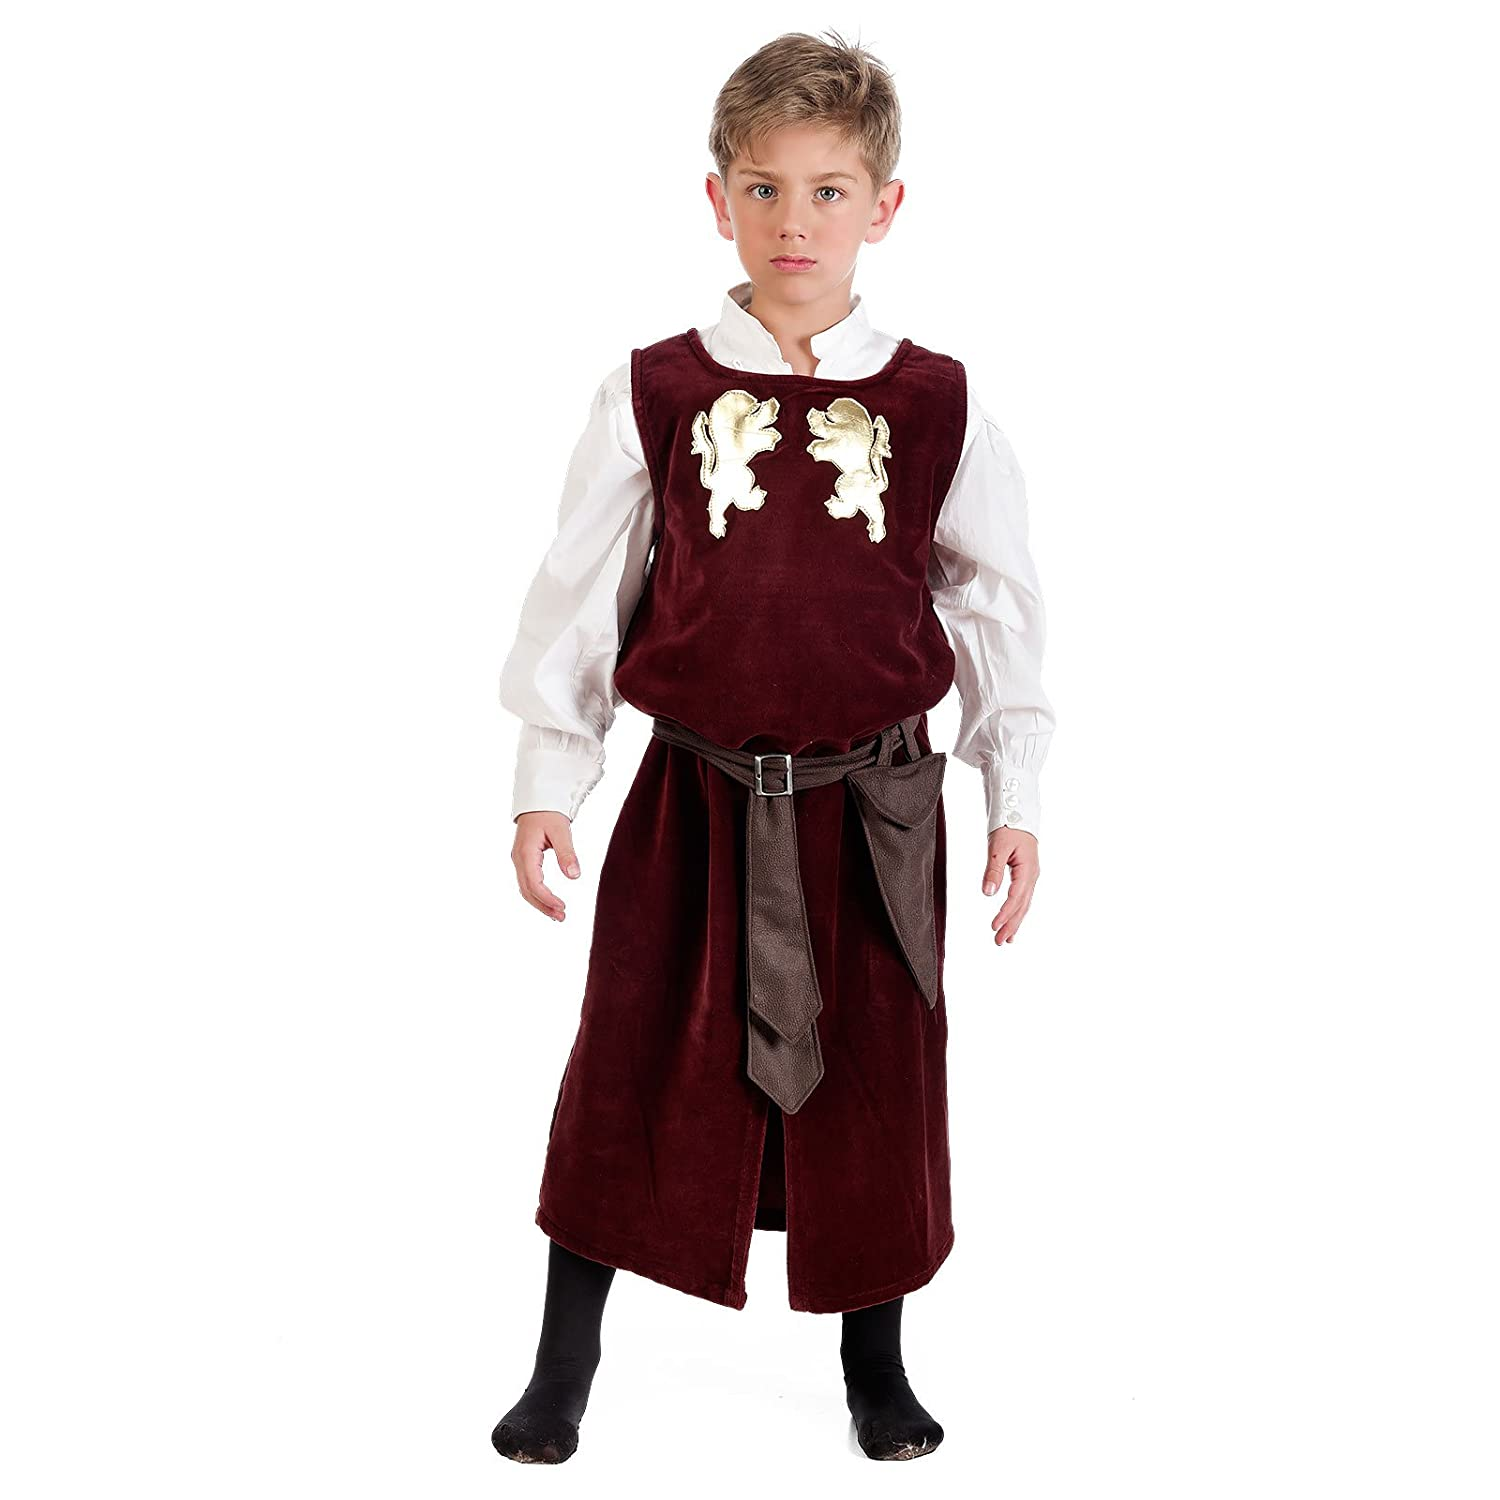 Medieval Page Costume Children Frock Coat With Shirt Red